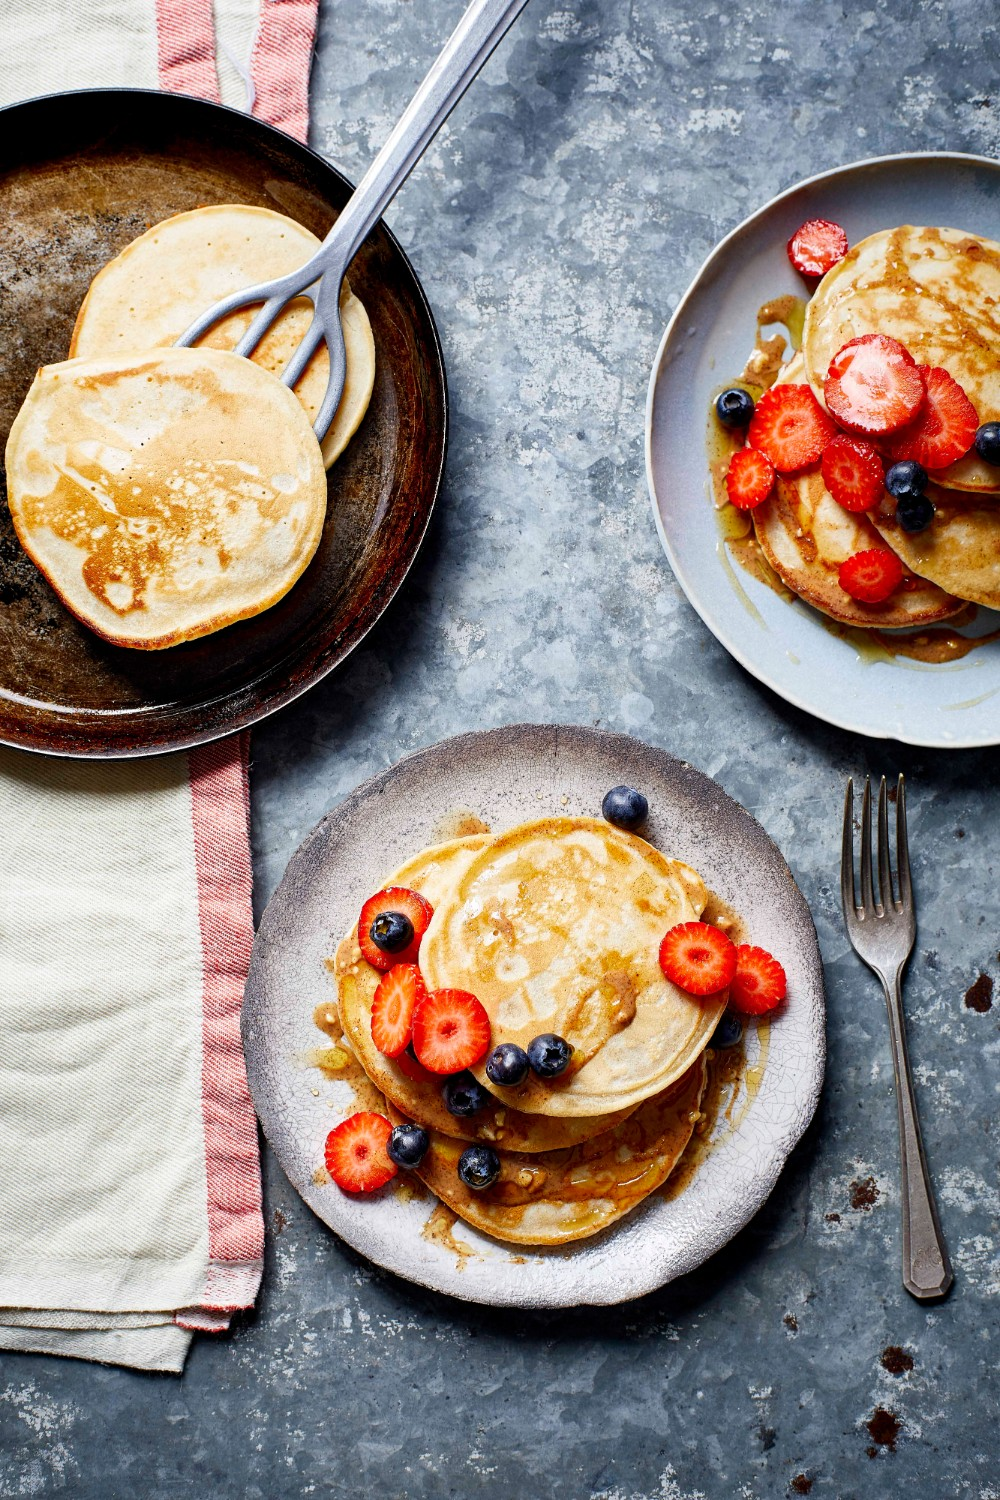 Easy Vegan Pancakes | What Vegans Eat Cookbook | WorldofVegan.com | #pancakes #breakfast #brunch #easyrecipes #vegan